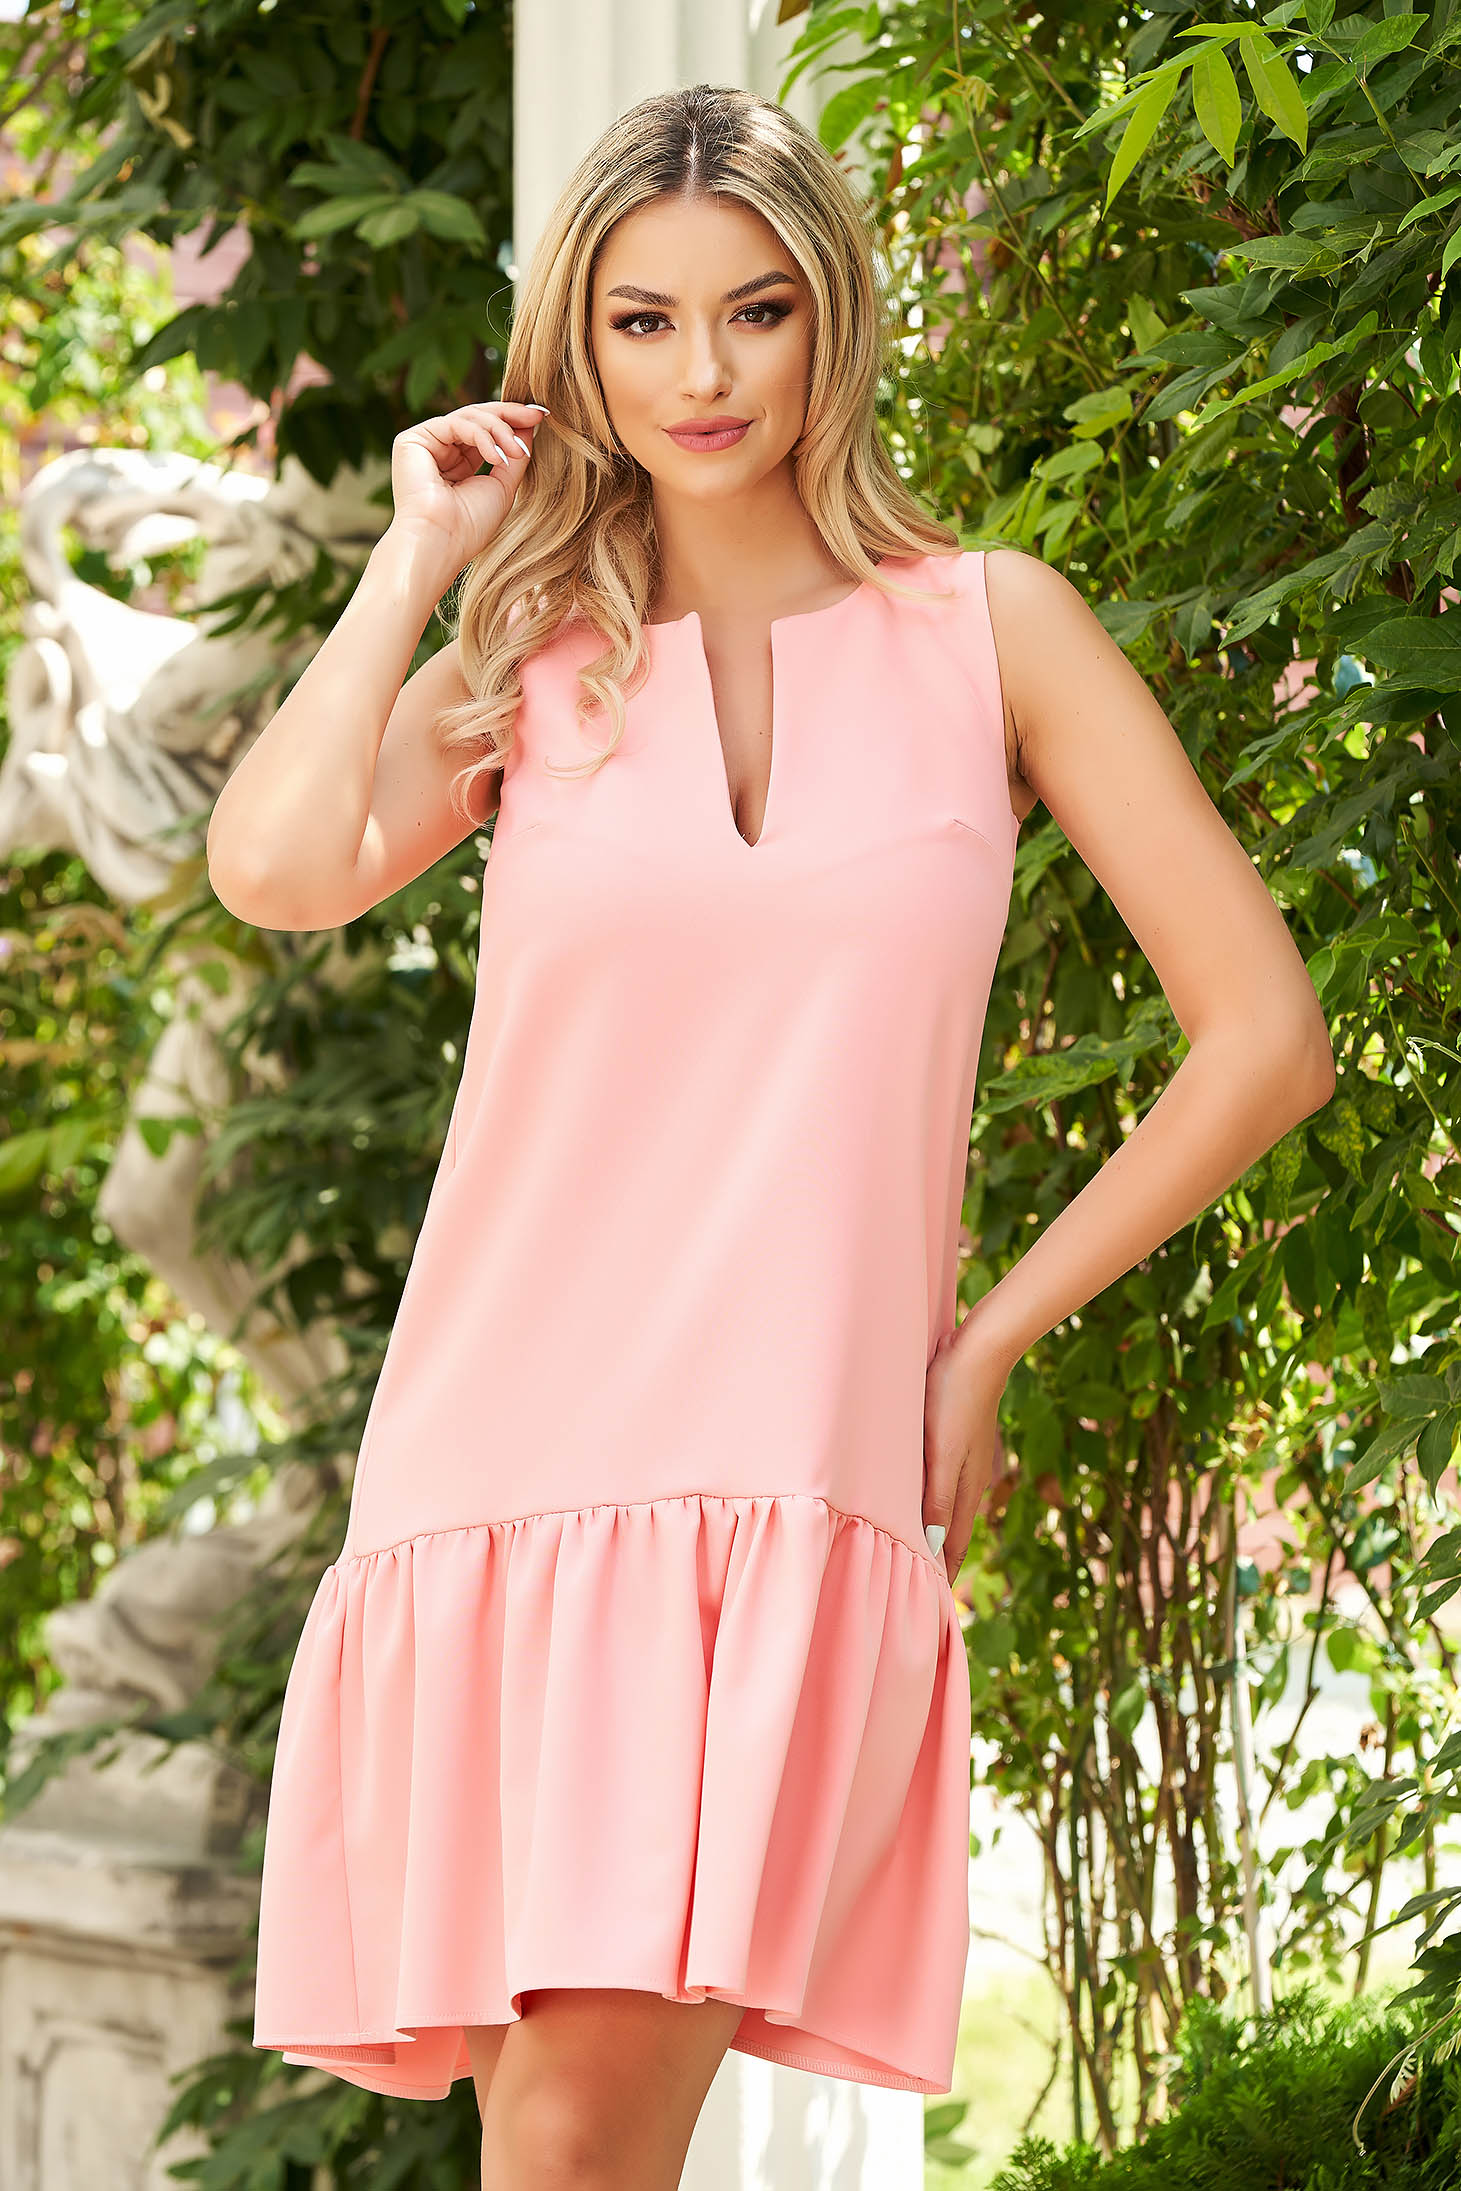 Dress StarShinerS coral daily cloth flared with ruffles at the buttom of the dress midi